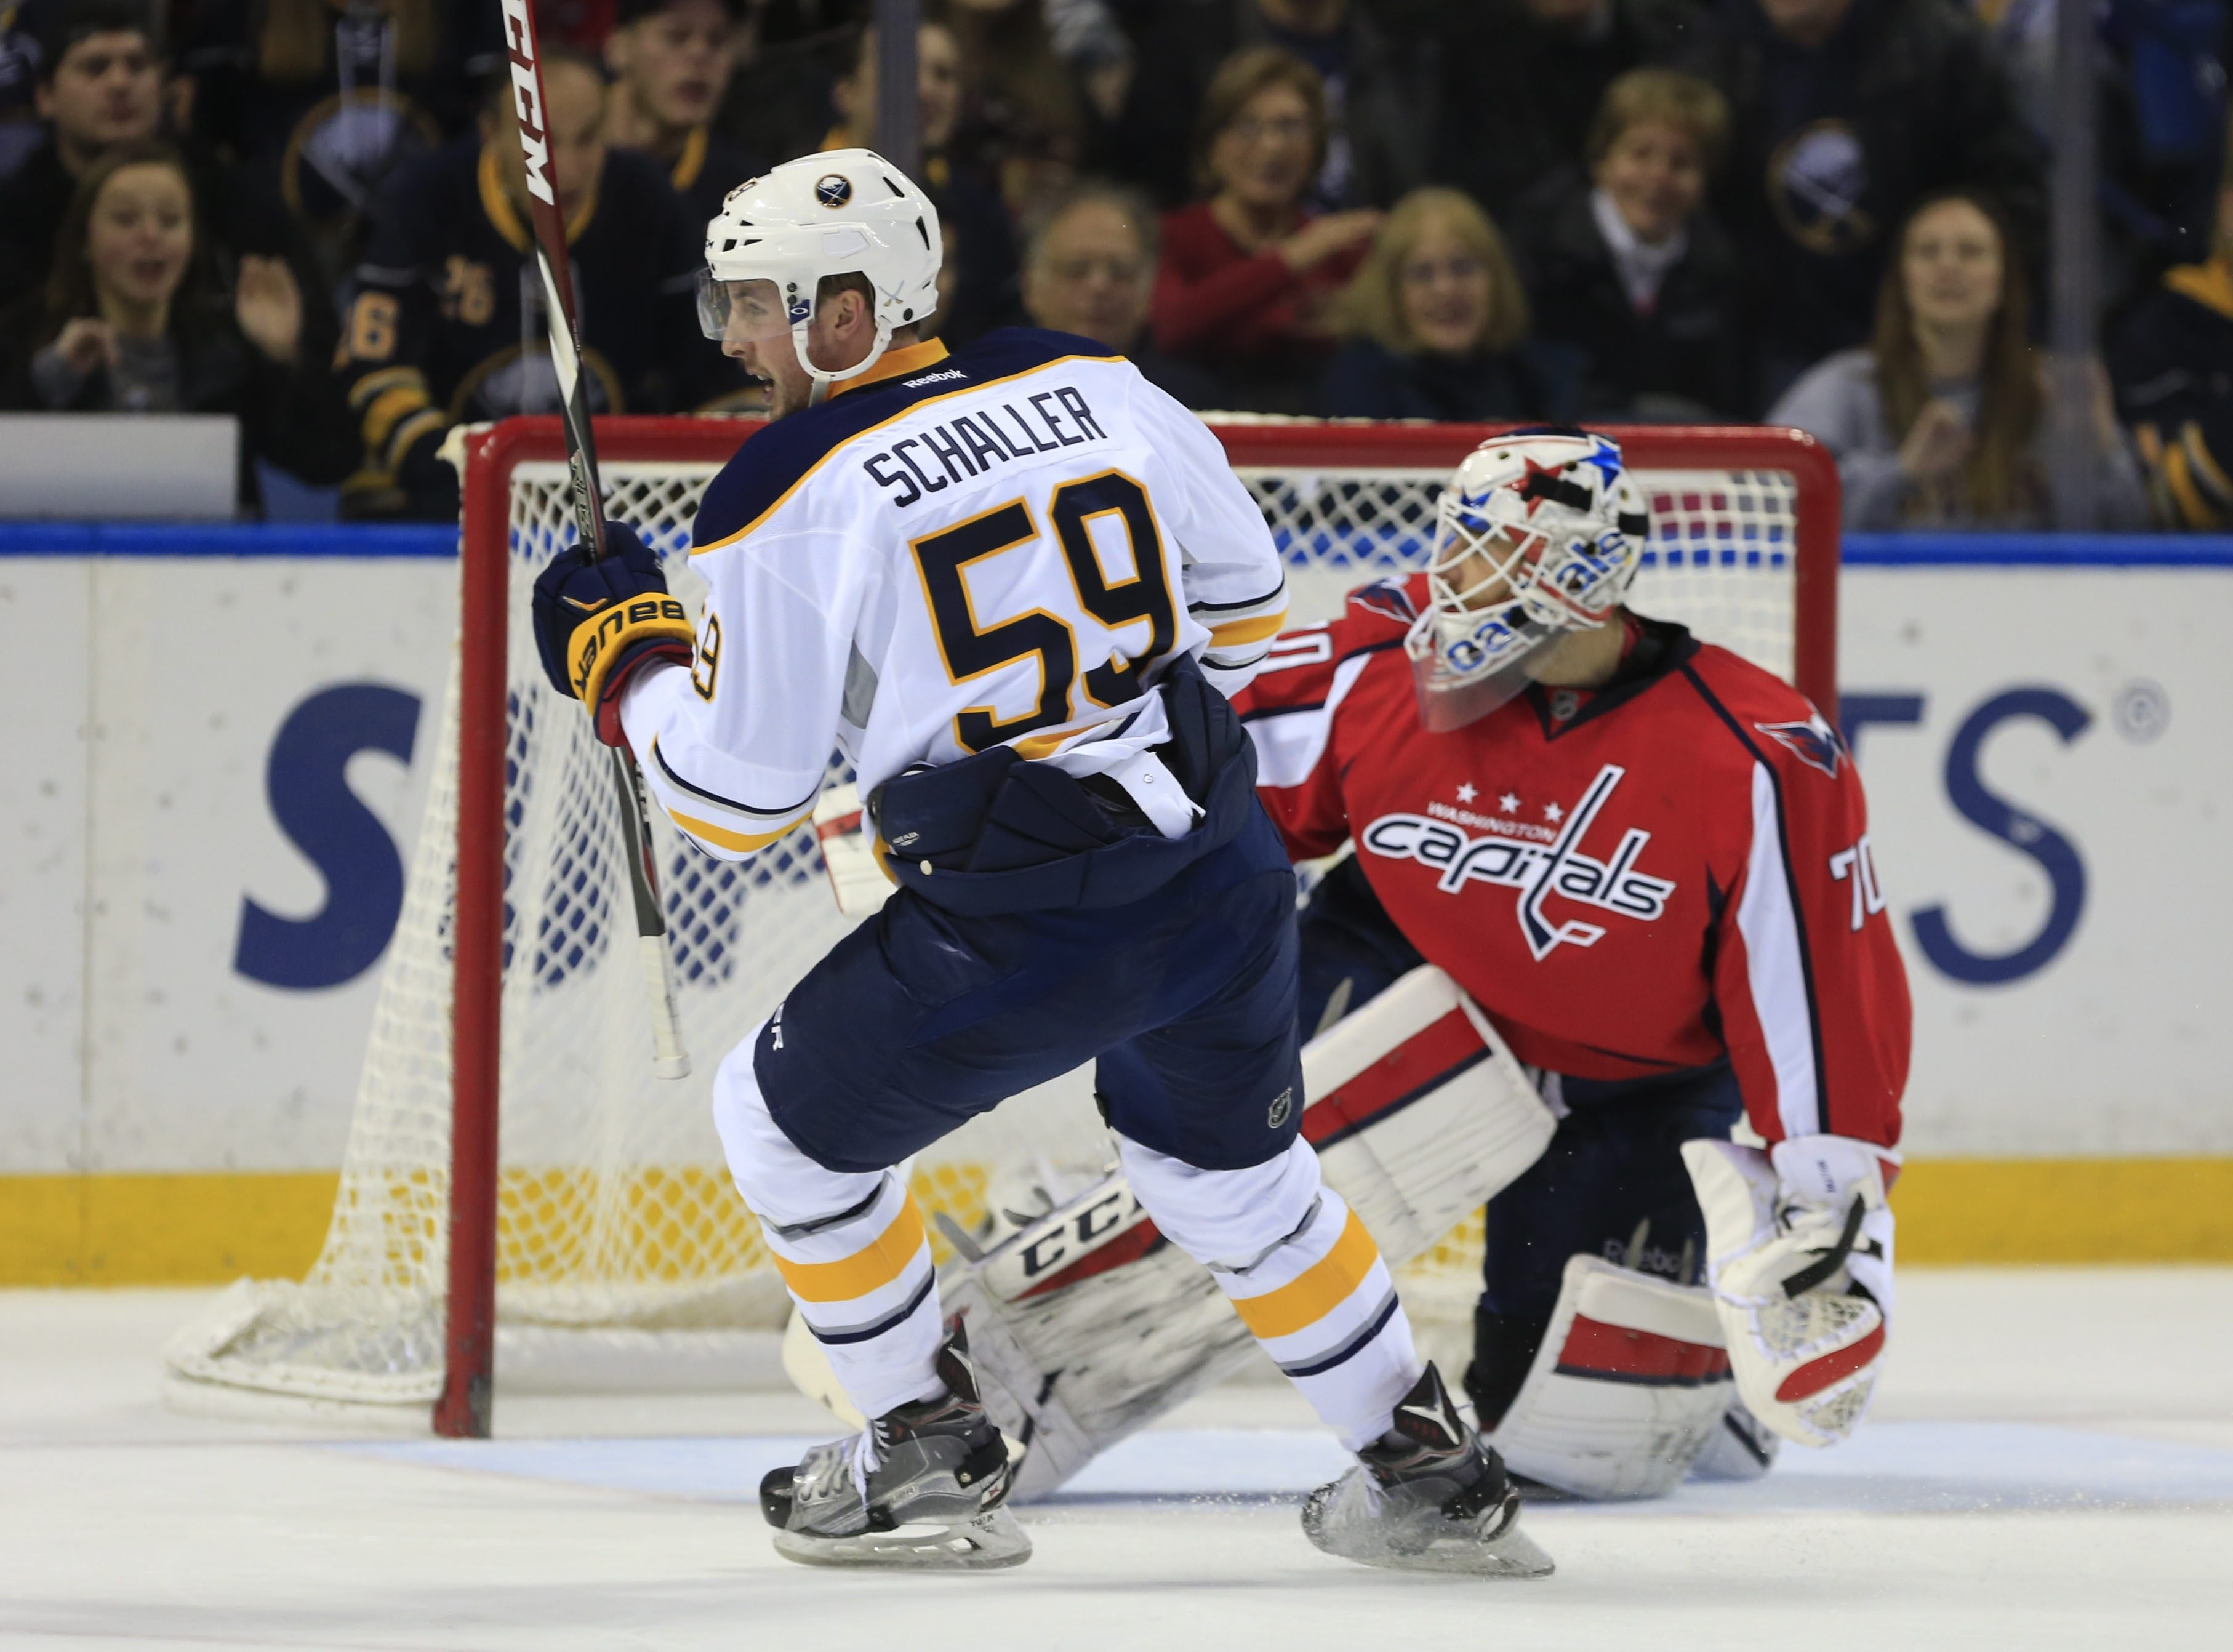 Buffalo's Tim Schaller celebrates the Sabres' second goal of the game against Capitals goaltender Braden Holtby.